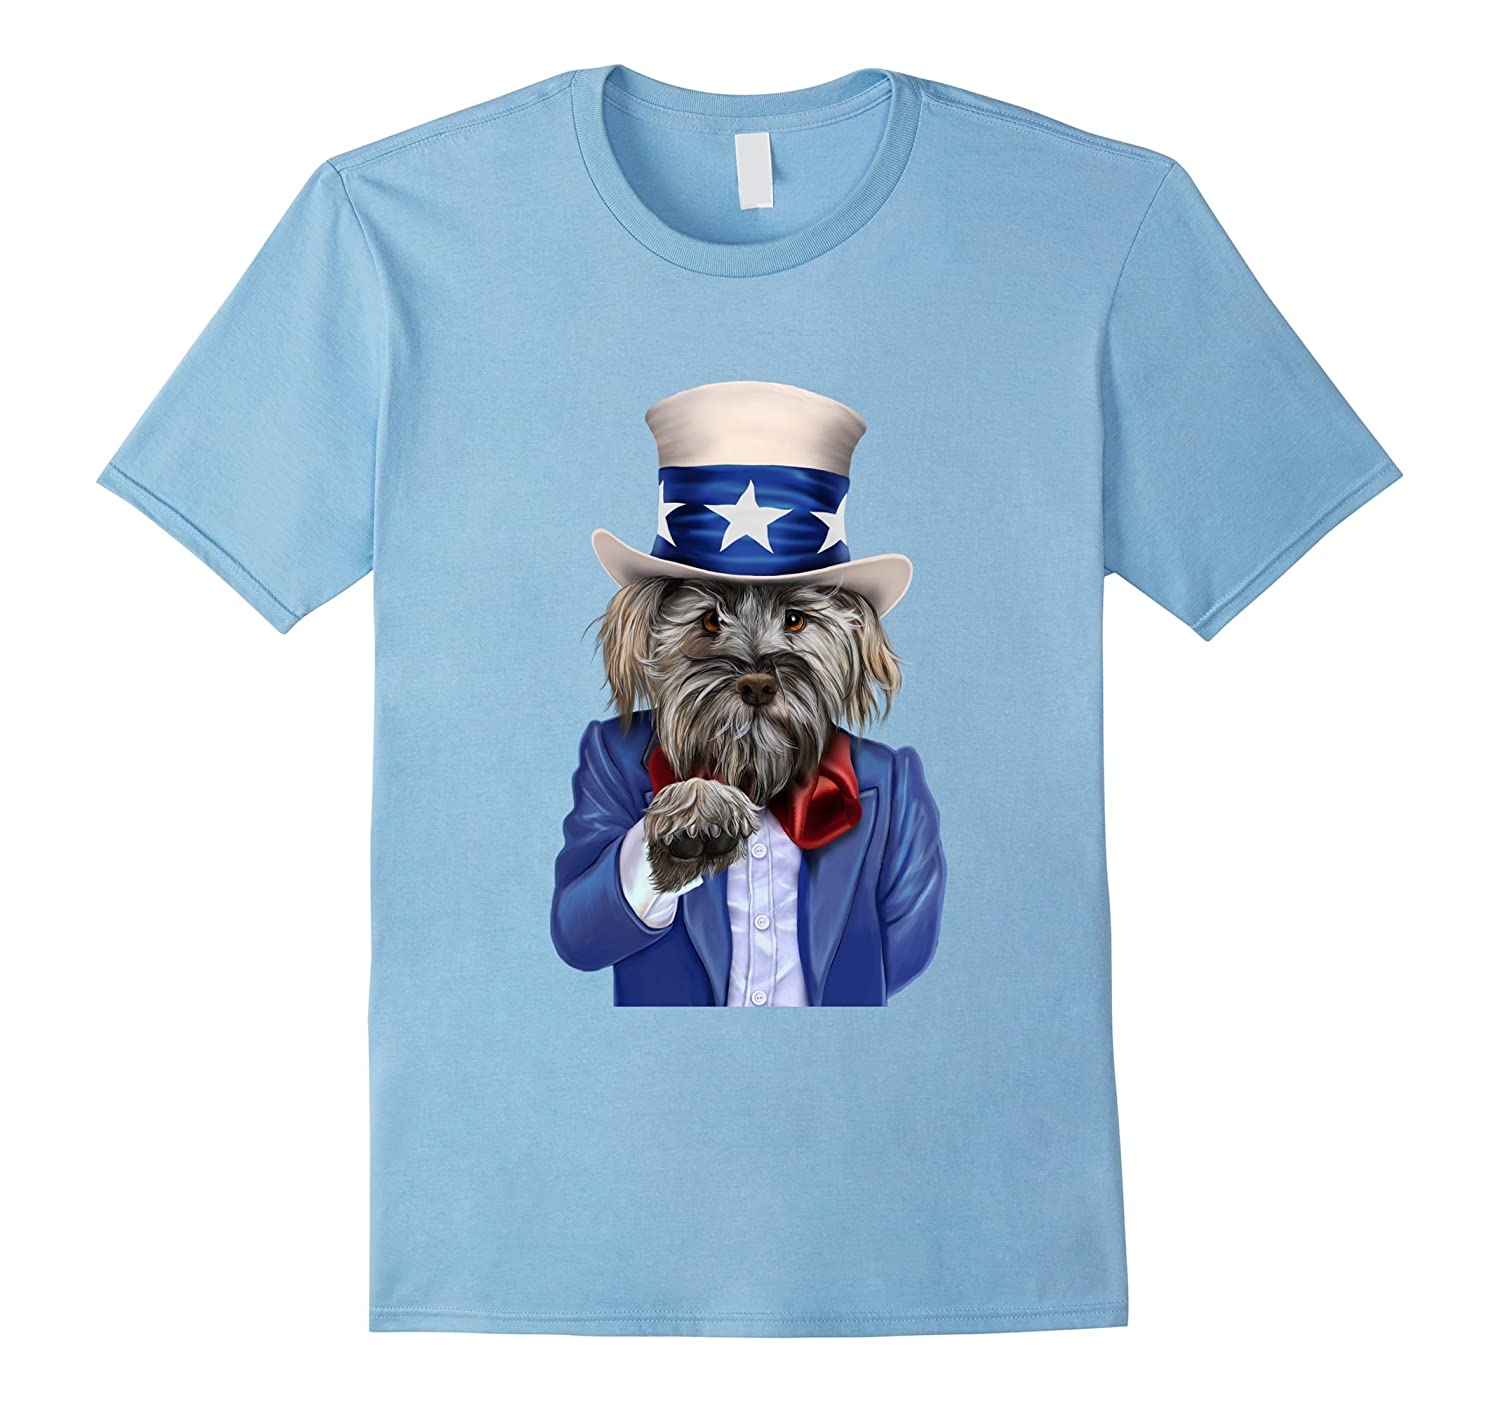 T-Shirt, Dog Impersonate Uncle Sam, Join US Army Recruit